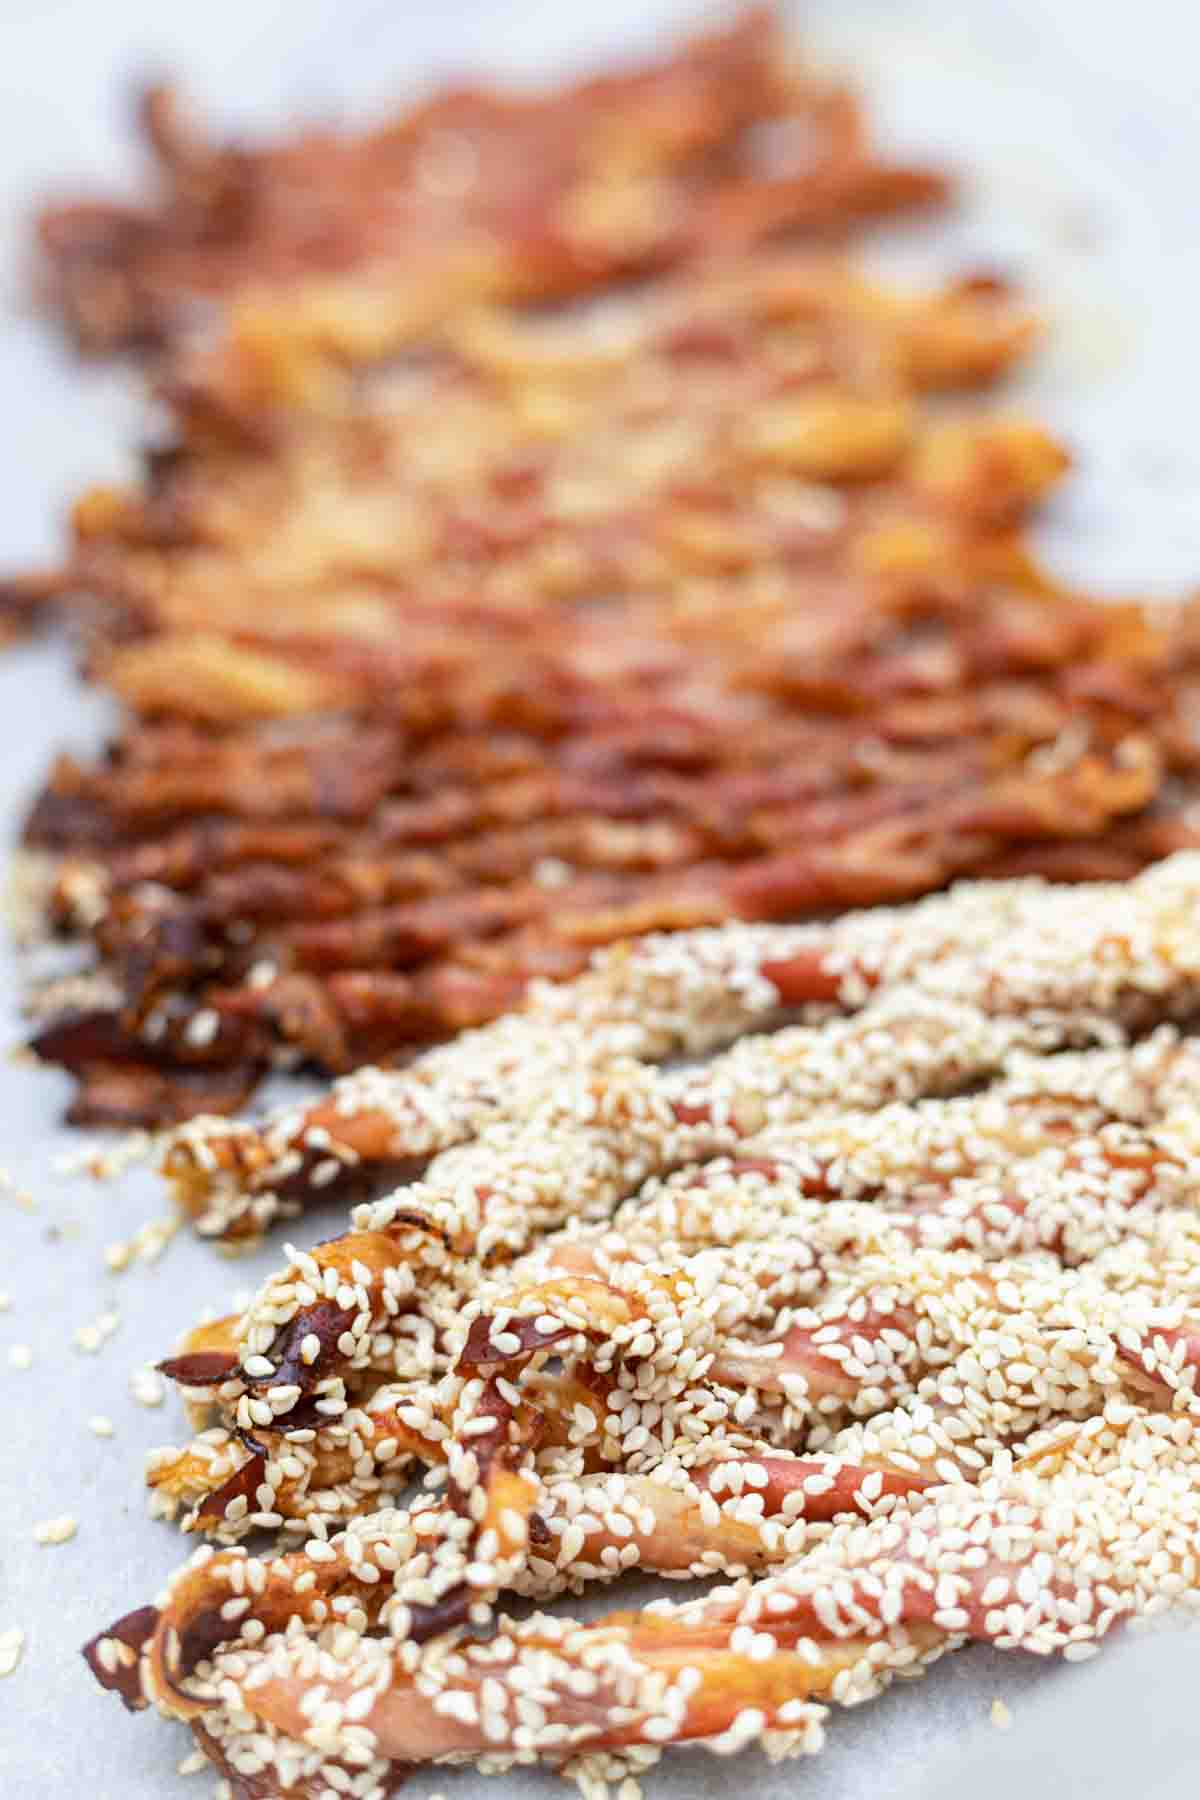 Crispy Twisted Bacon spread on a parchment paper